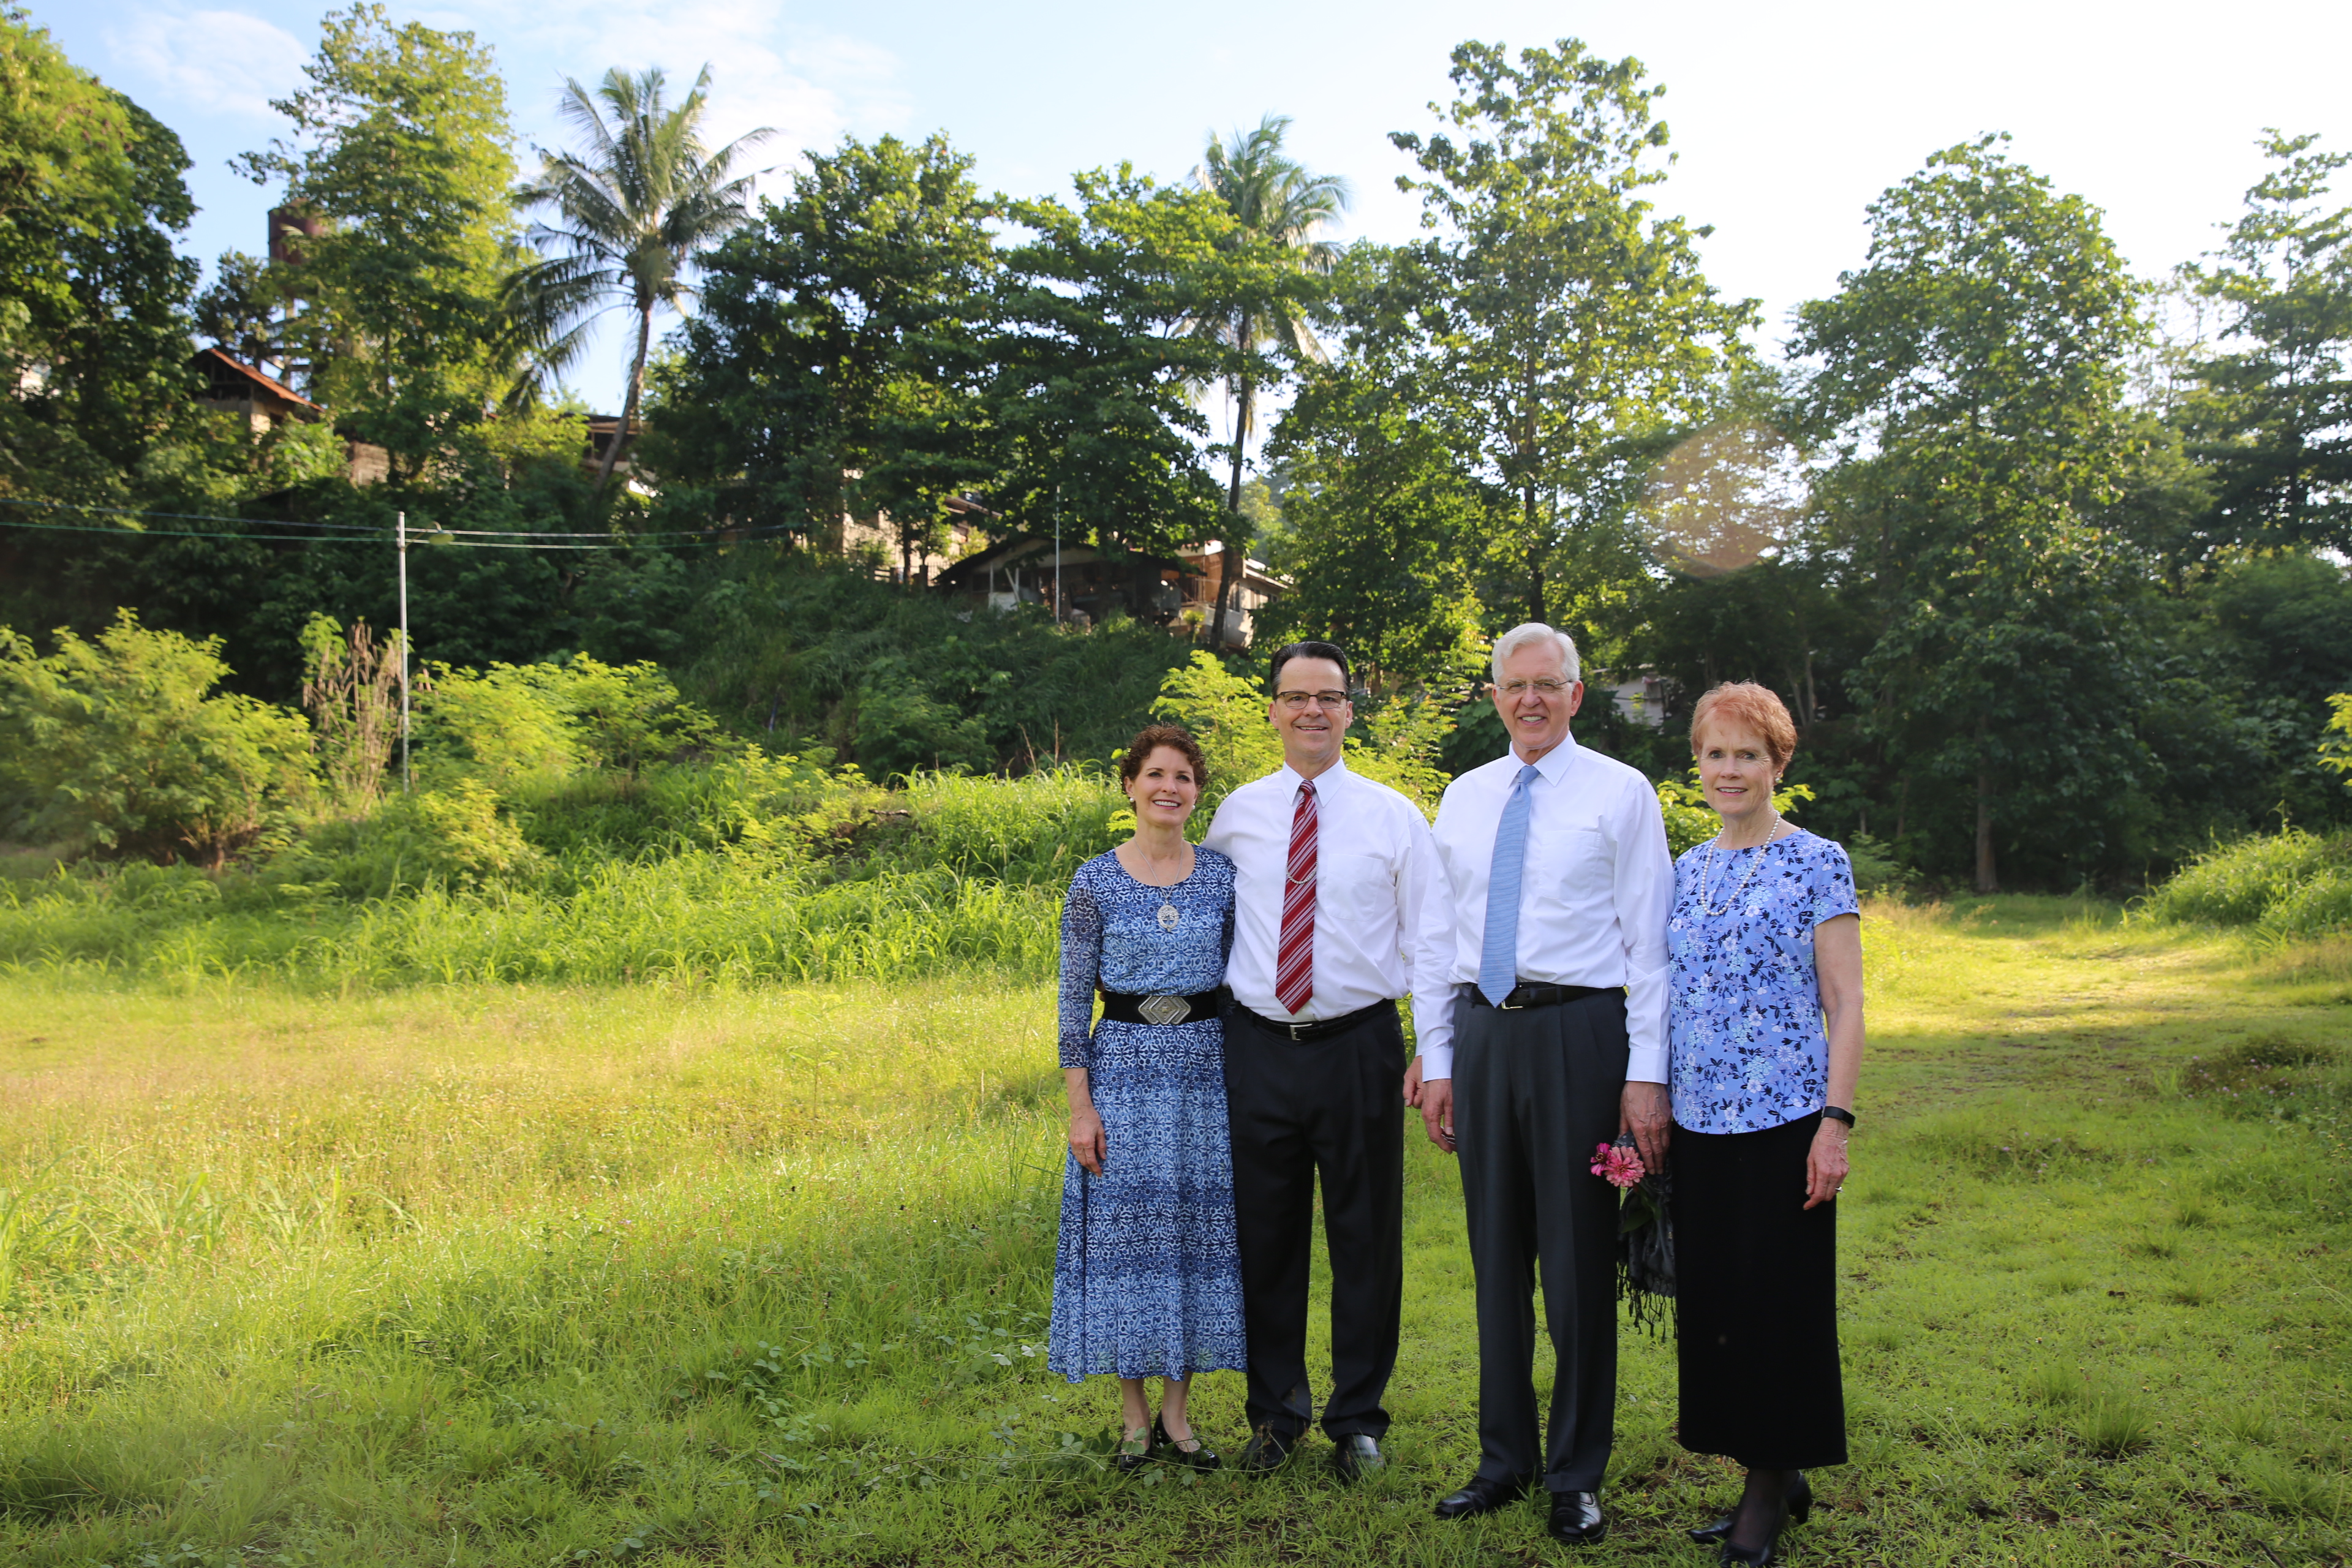 Elder D. Todd Christofferson and his wife, Sister Kathy Christofferson, right, visit the future site of a temple in Cagayan de Oro, Philippines, with Elder Shayne M. Bowen and Sister Lynette Bowen.